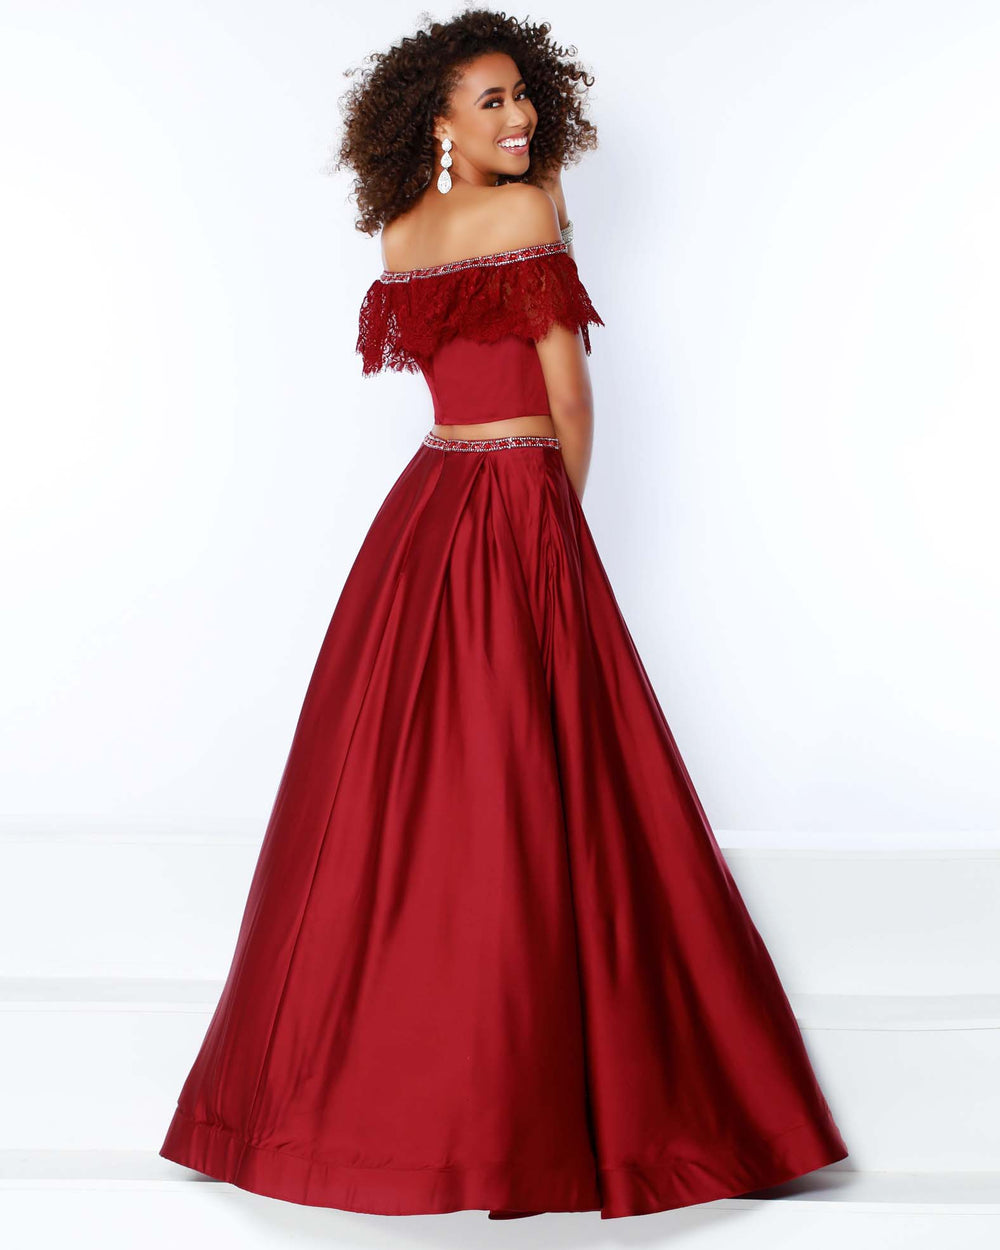 2Cute 91455 Two Pieces Off-The-Shoulder Long Prom Dress